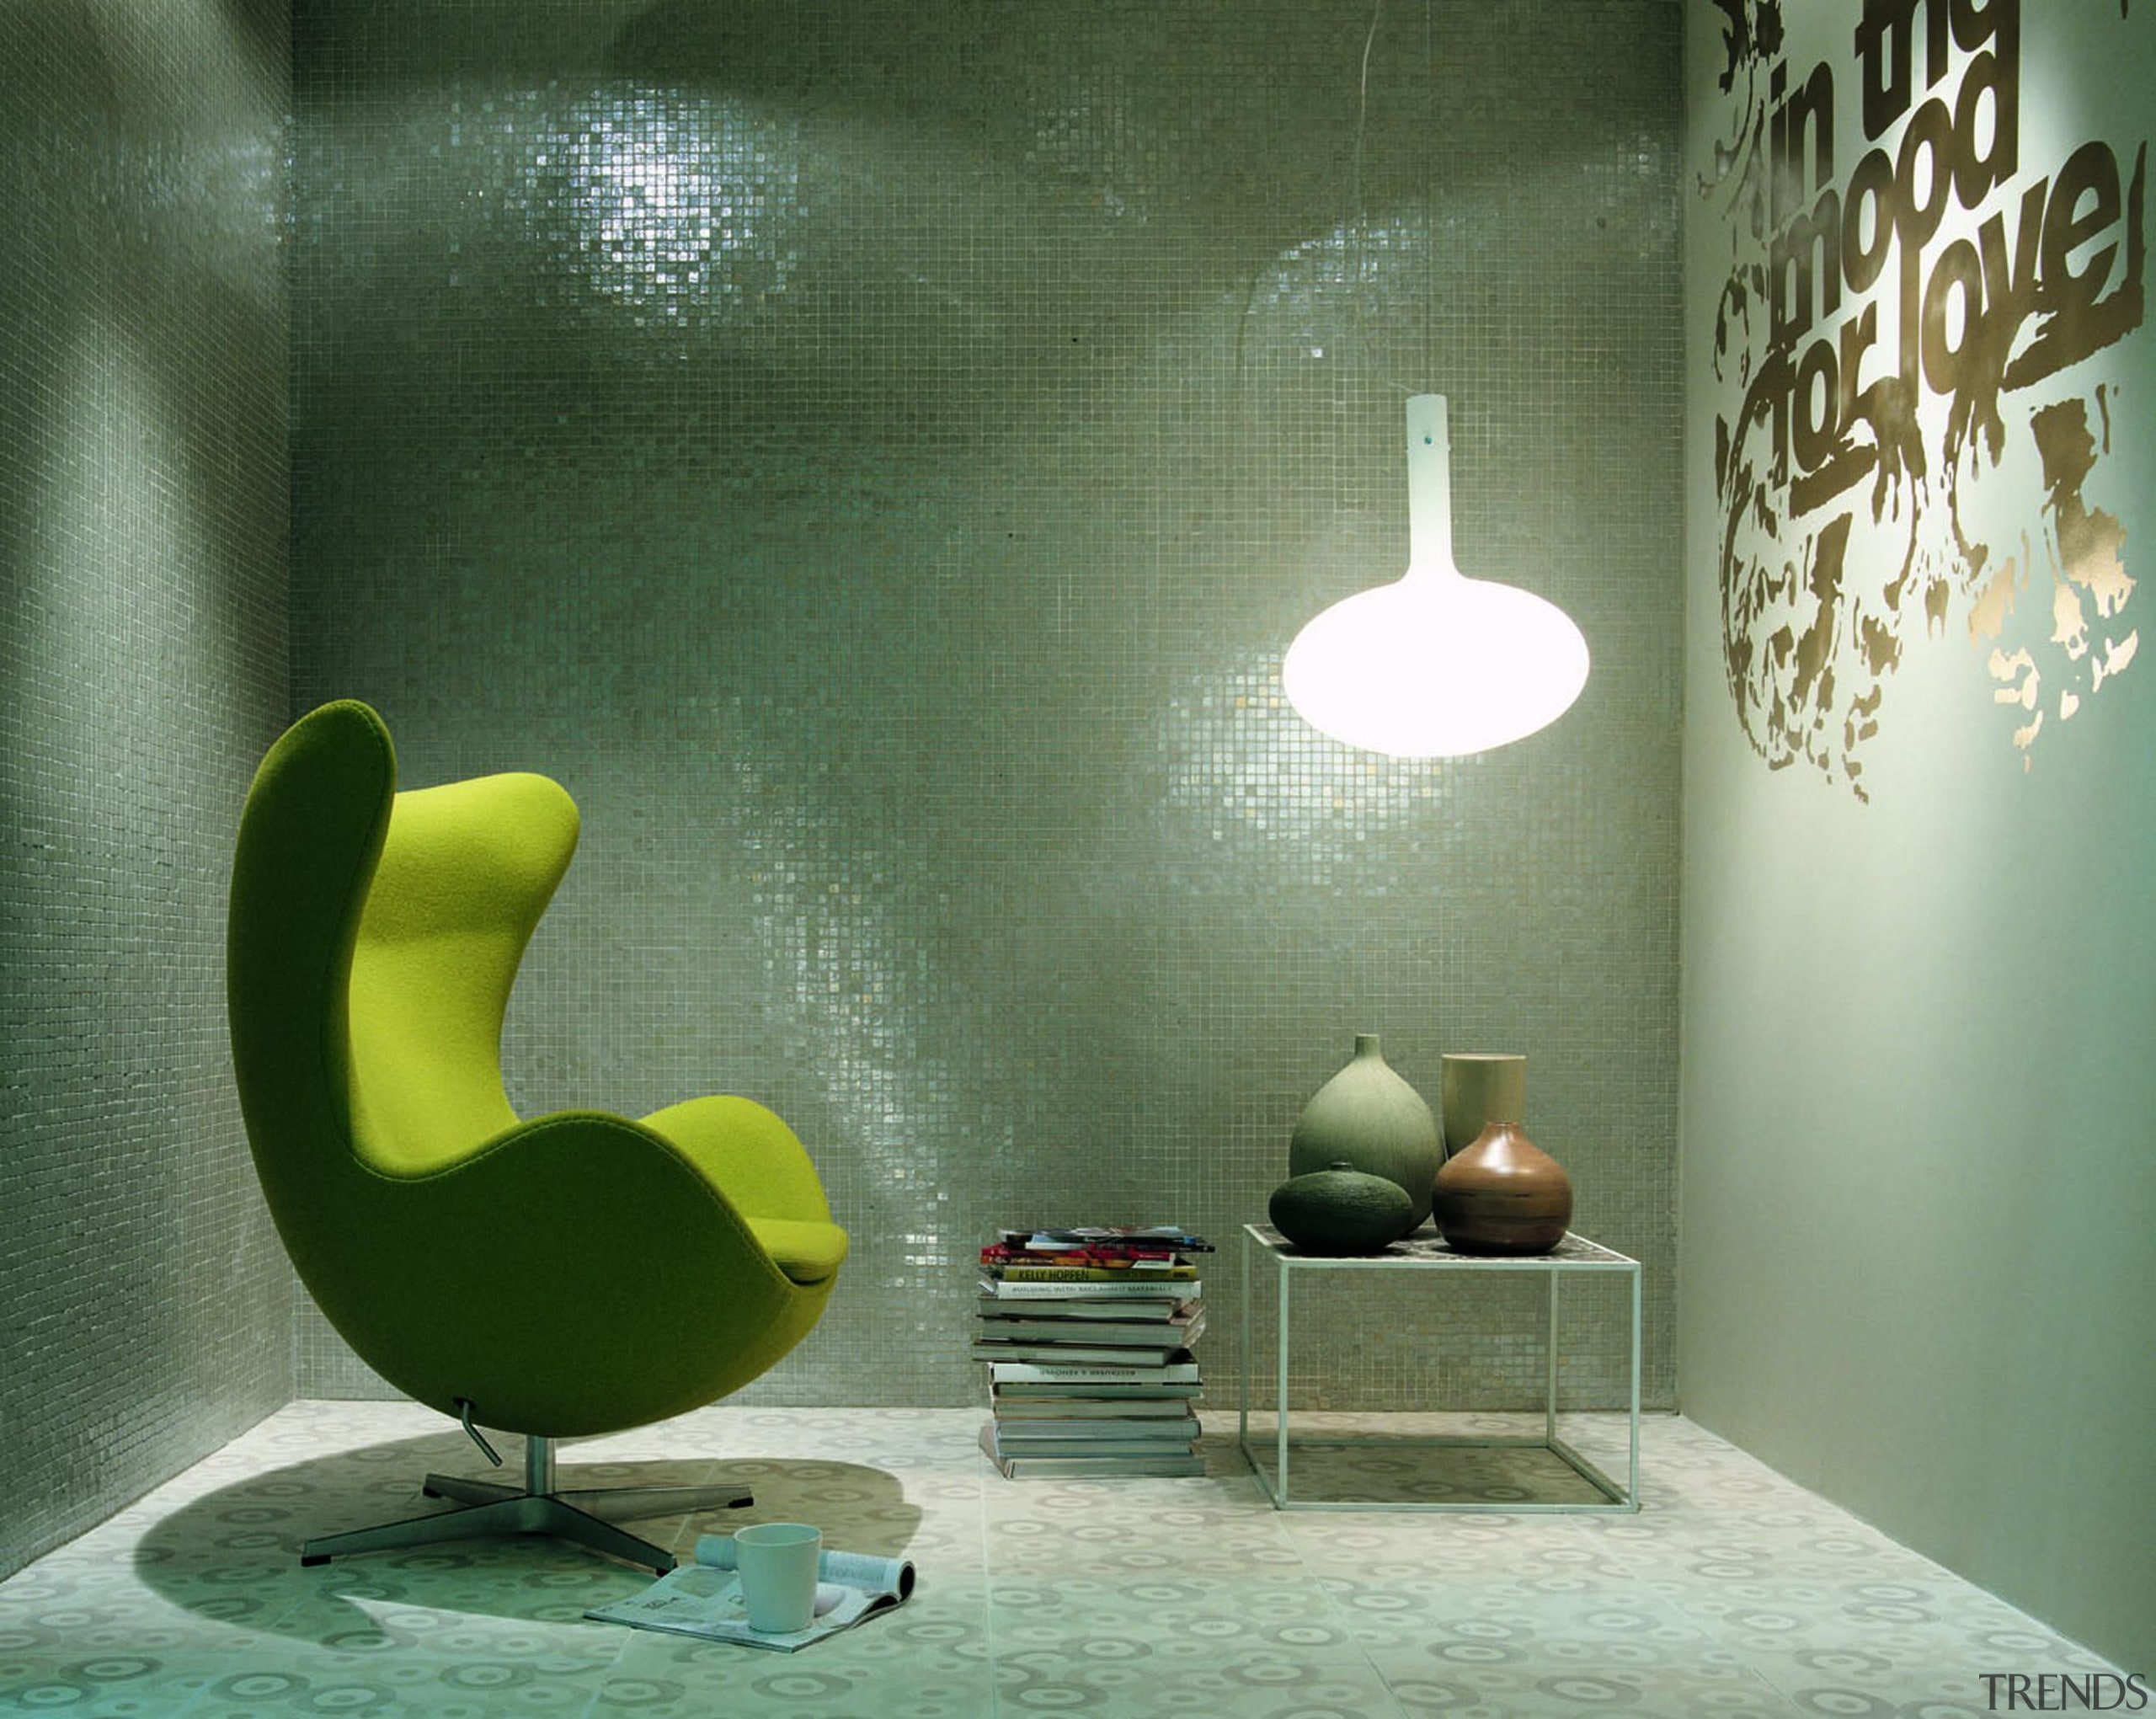 vetro silver lux wall mosaic ceiling, chair, floor, furniture, green, interior design, lighting, product design, table, wall, wallpaper, green